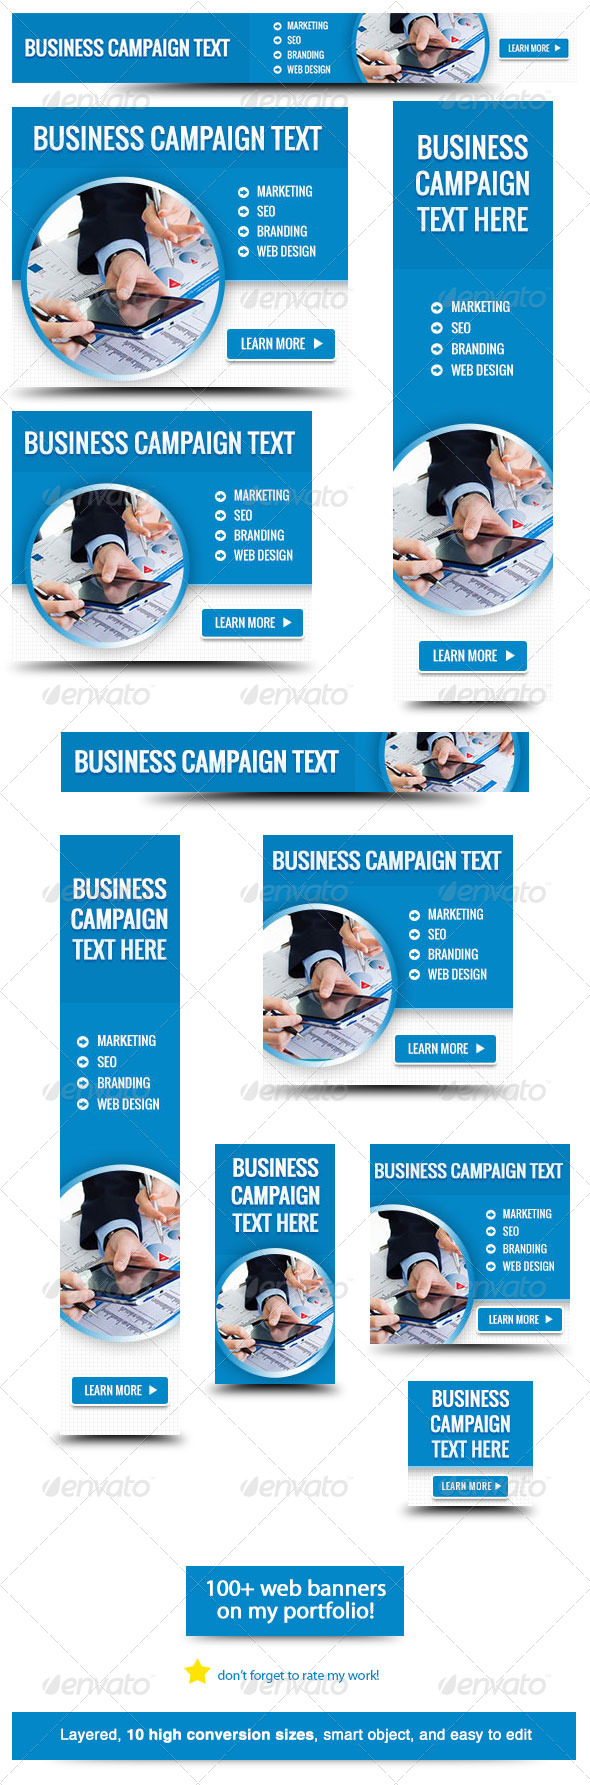 Corporate Web Banner Design Template 33 Banners Amp Ads